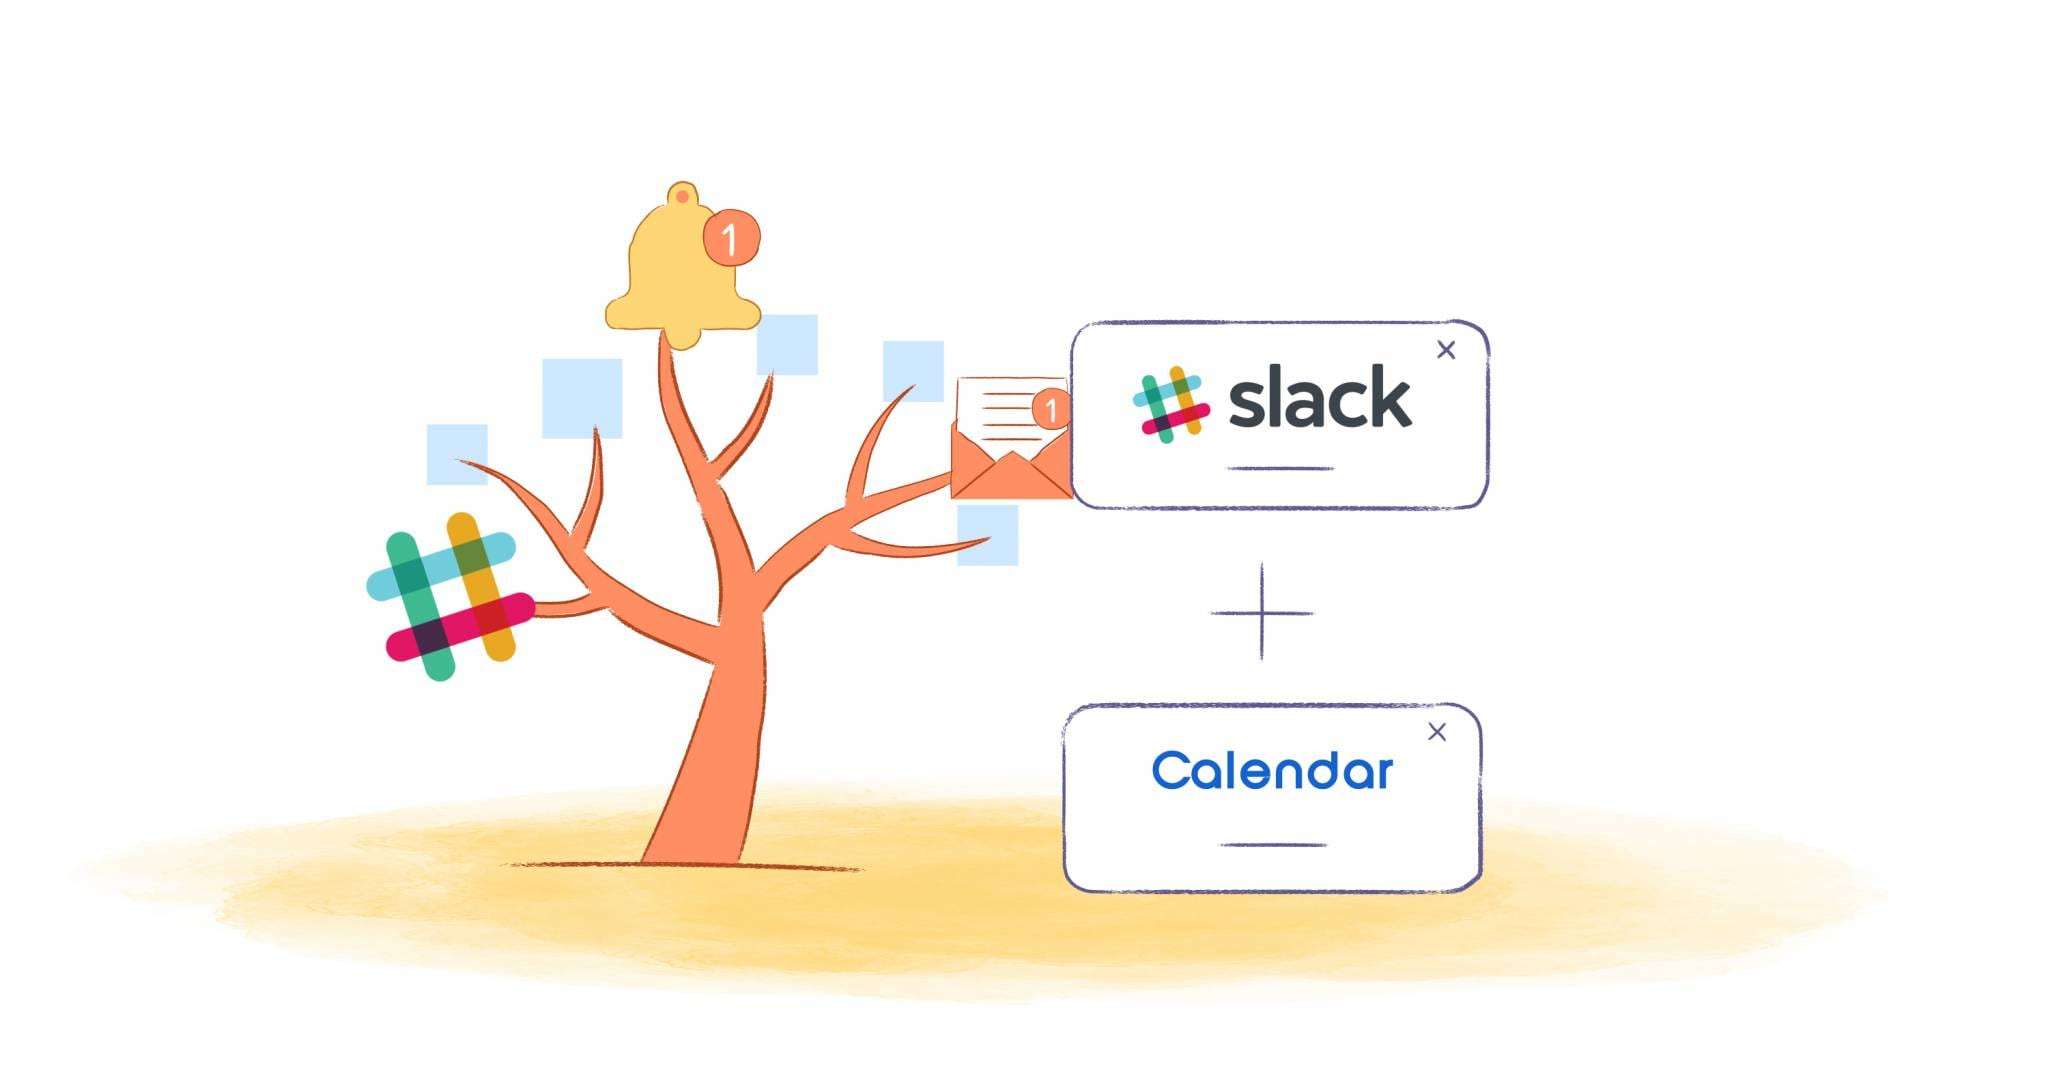 How Do You Connect Your Calendar with Slack?